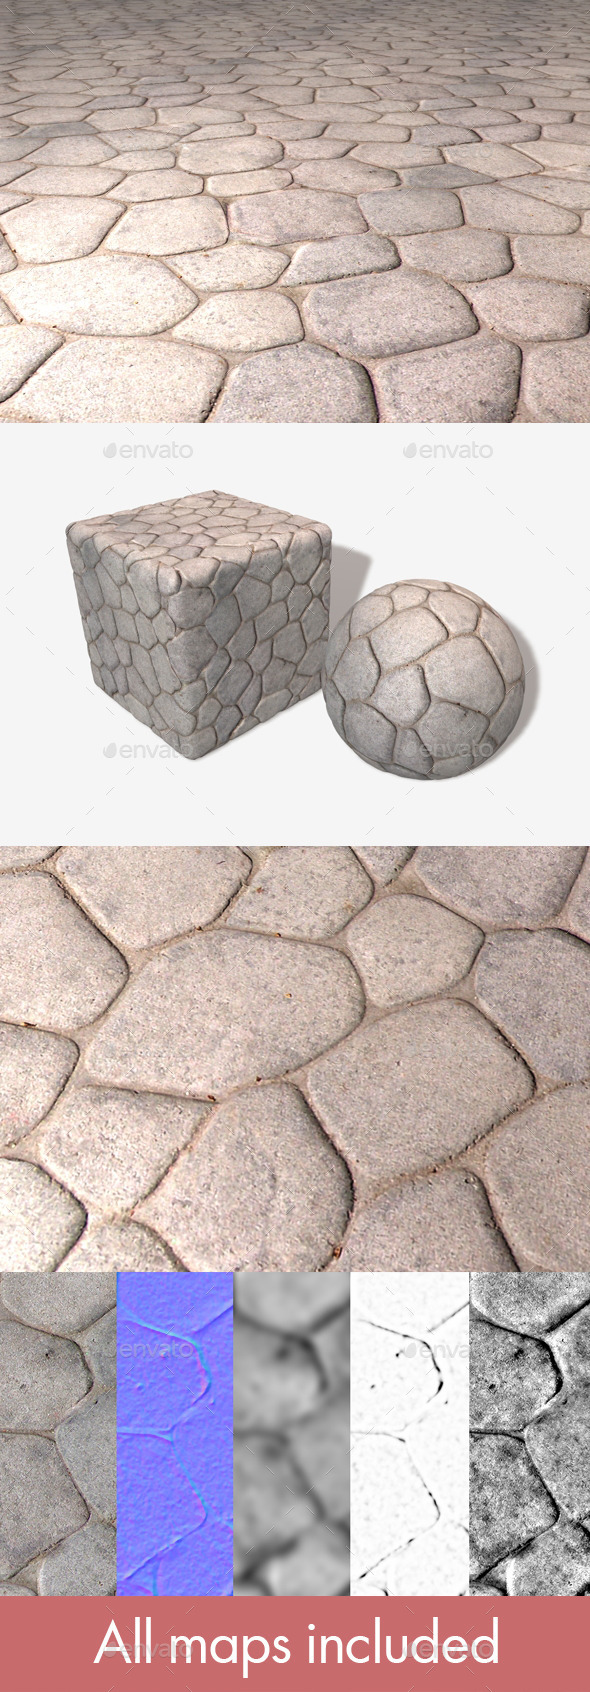 3DOcean Smooth Stone Floor Seamless Texture 11493628